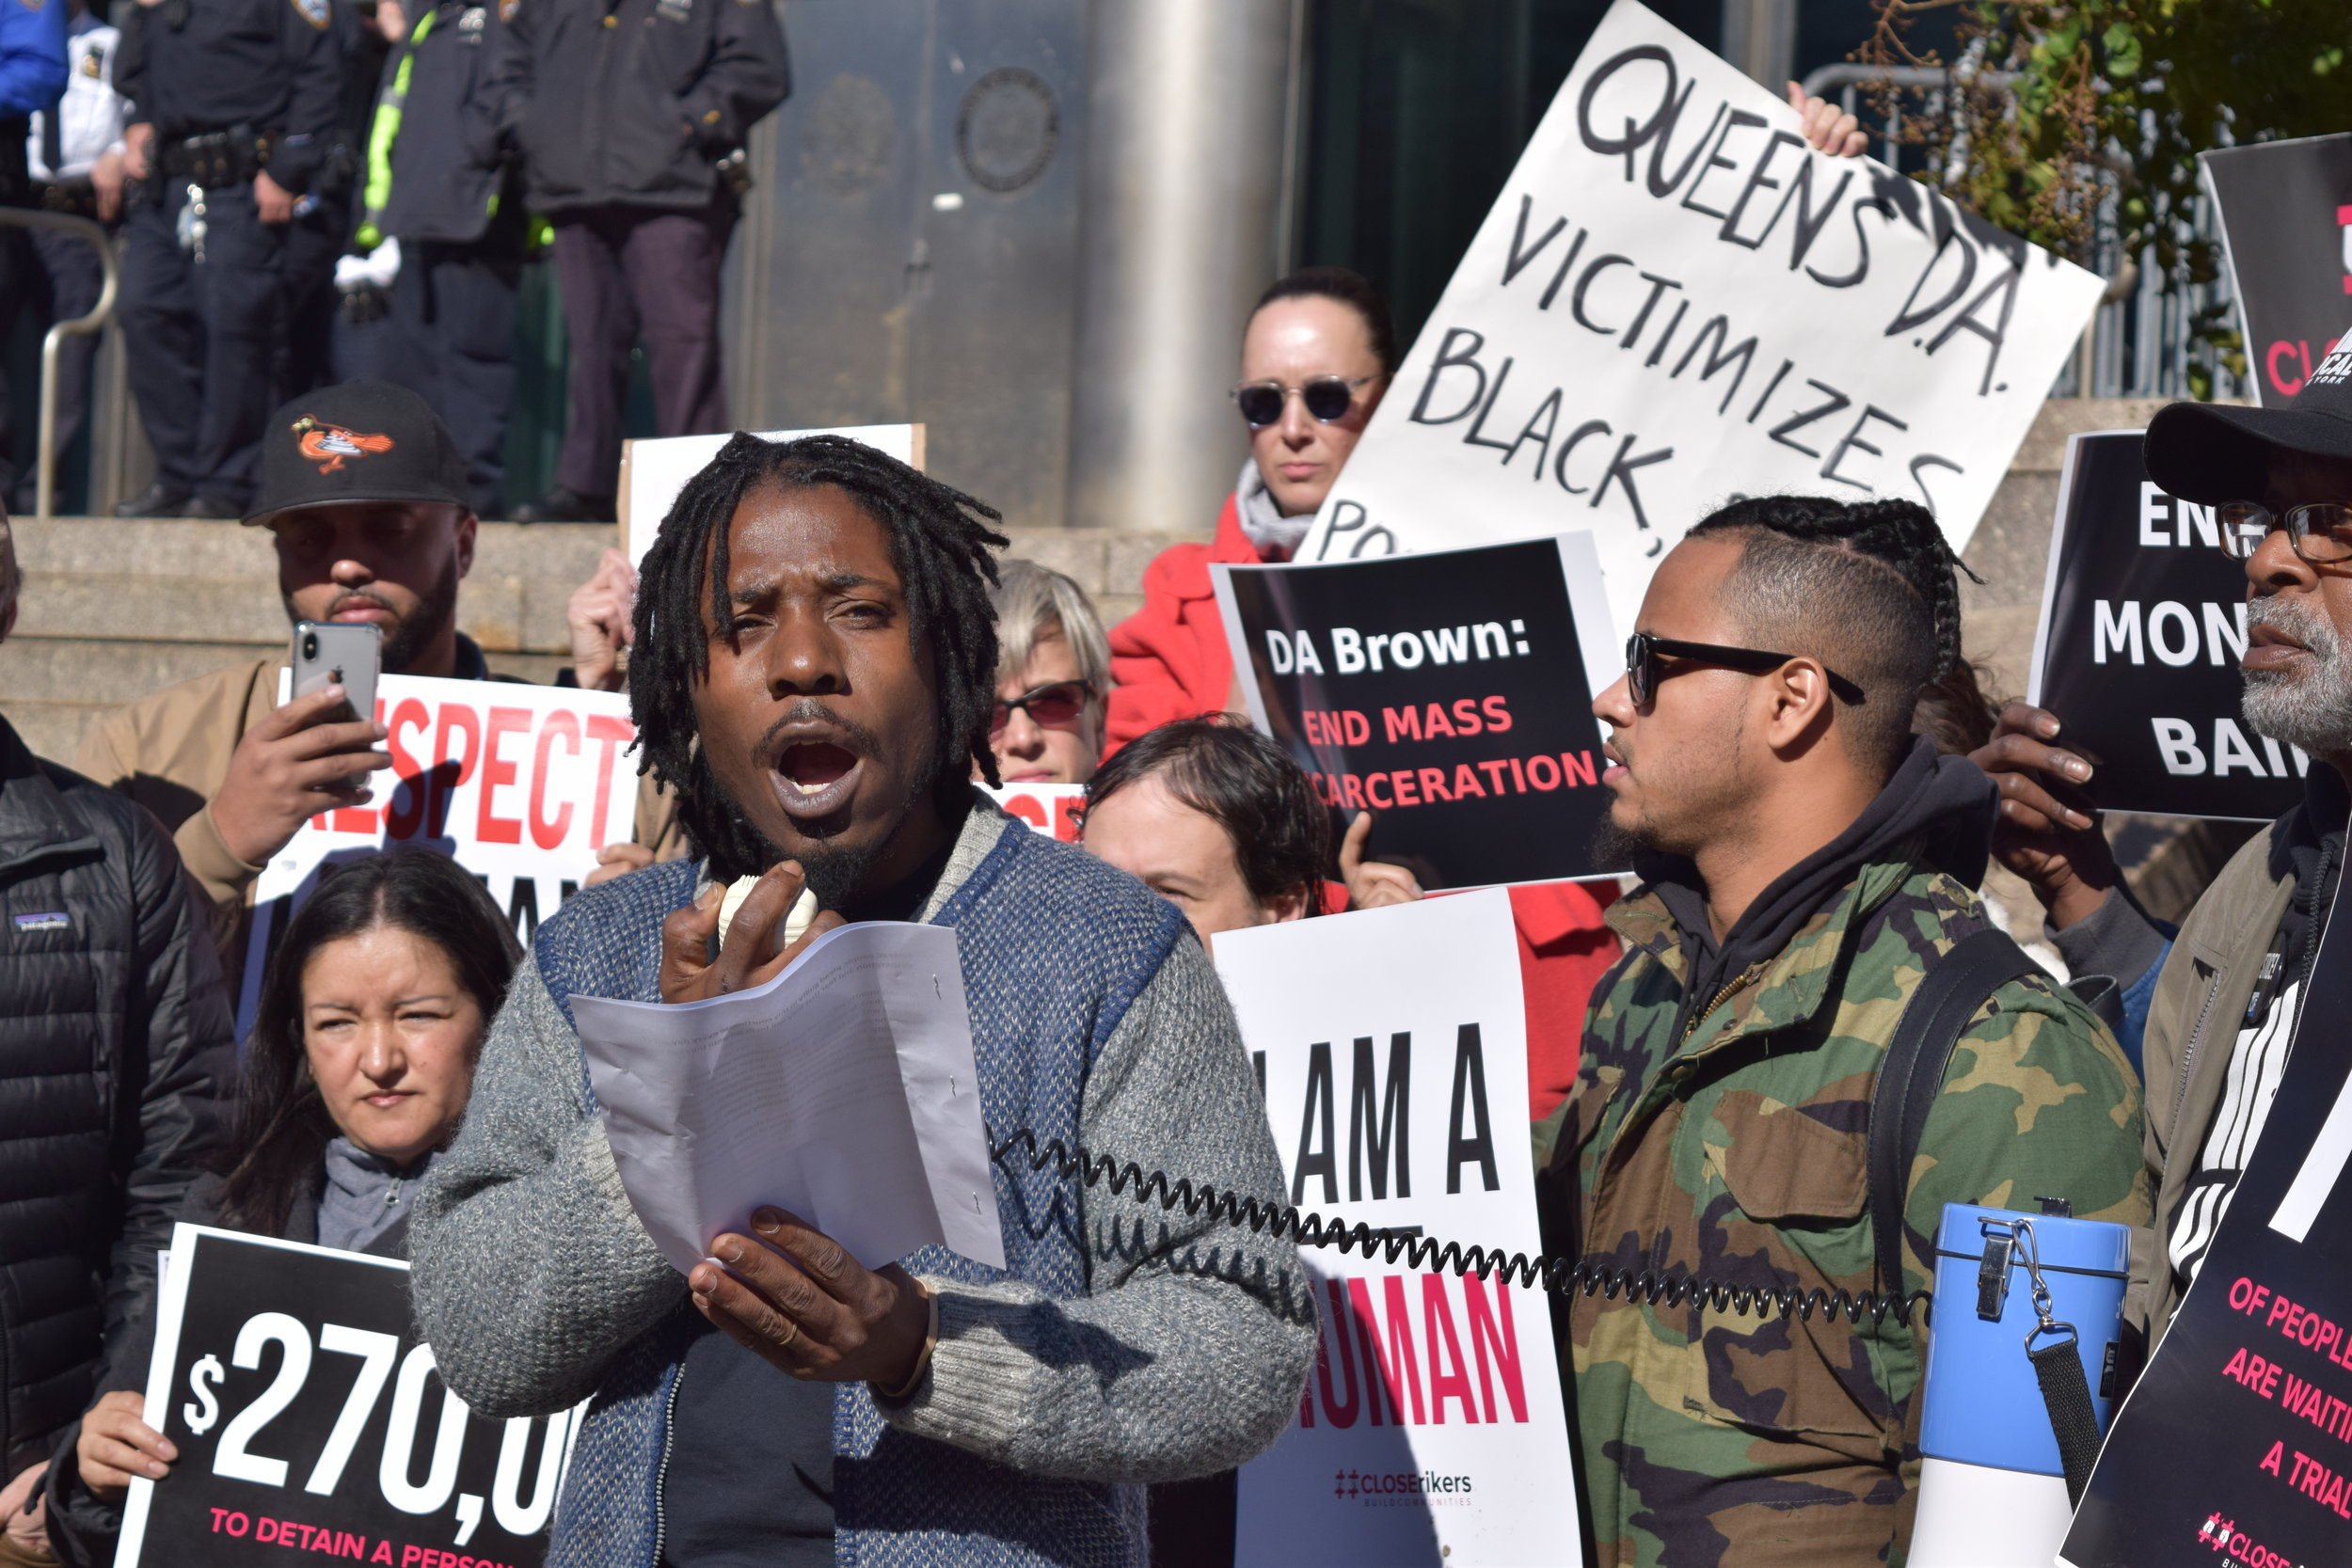 Ramel Edwards from the Bronx Freedom Fund speaks during a demonstration outside Queens Criminal Courthouse Tuesday. //  Eagle  photo by Christina Carrega